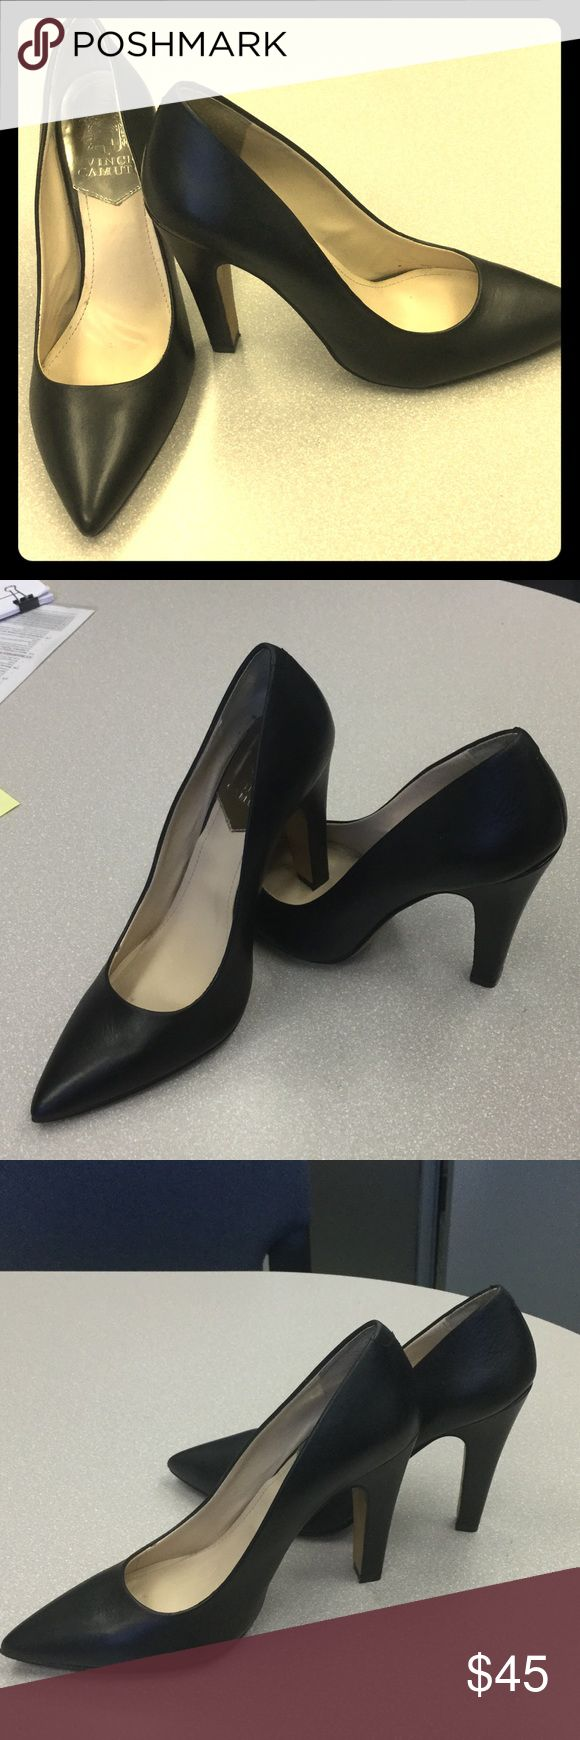 Vince Camuto Black Pumps SALE!! Vince Camuto Black Pumps in good condition, worn literally six times. I just hand them shined for their new owner! Vince Camuto Shoes Heels